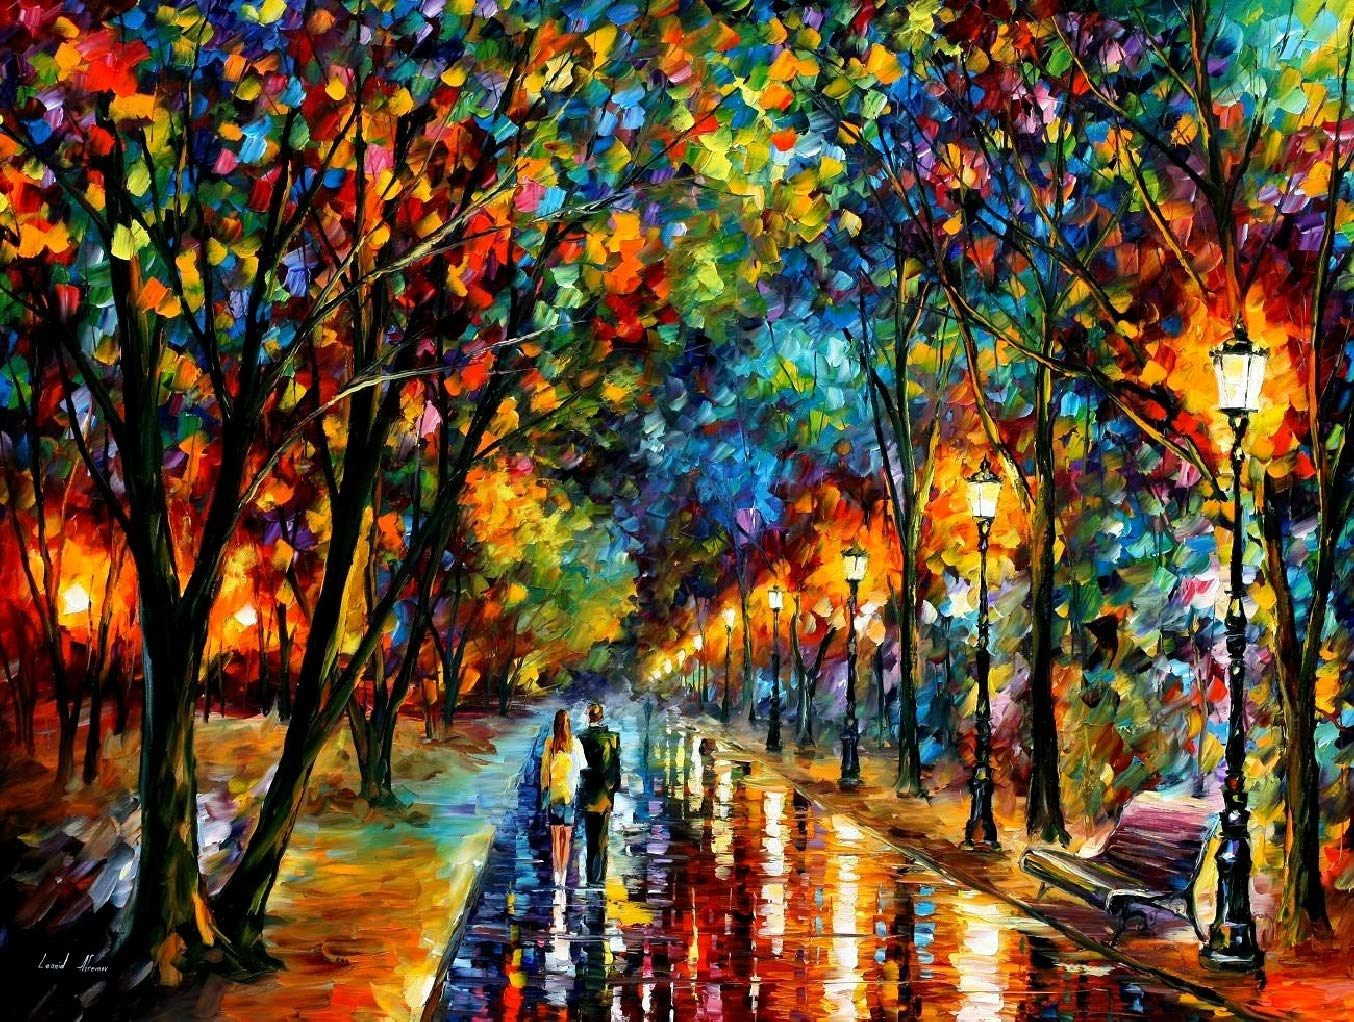 DIY Paint by Numbers Kit for Adults - Lights in Raining night   Paint by Numbers Landscape Scene Paintings Arts Craft for Home Wall Decor   Pre-Printed Art-Quality Canvas, 3 Brushes, 24 Acrylic Paints by Alto Crafto